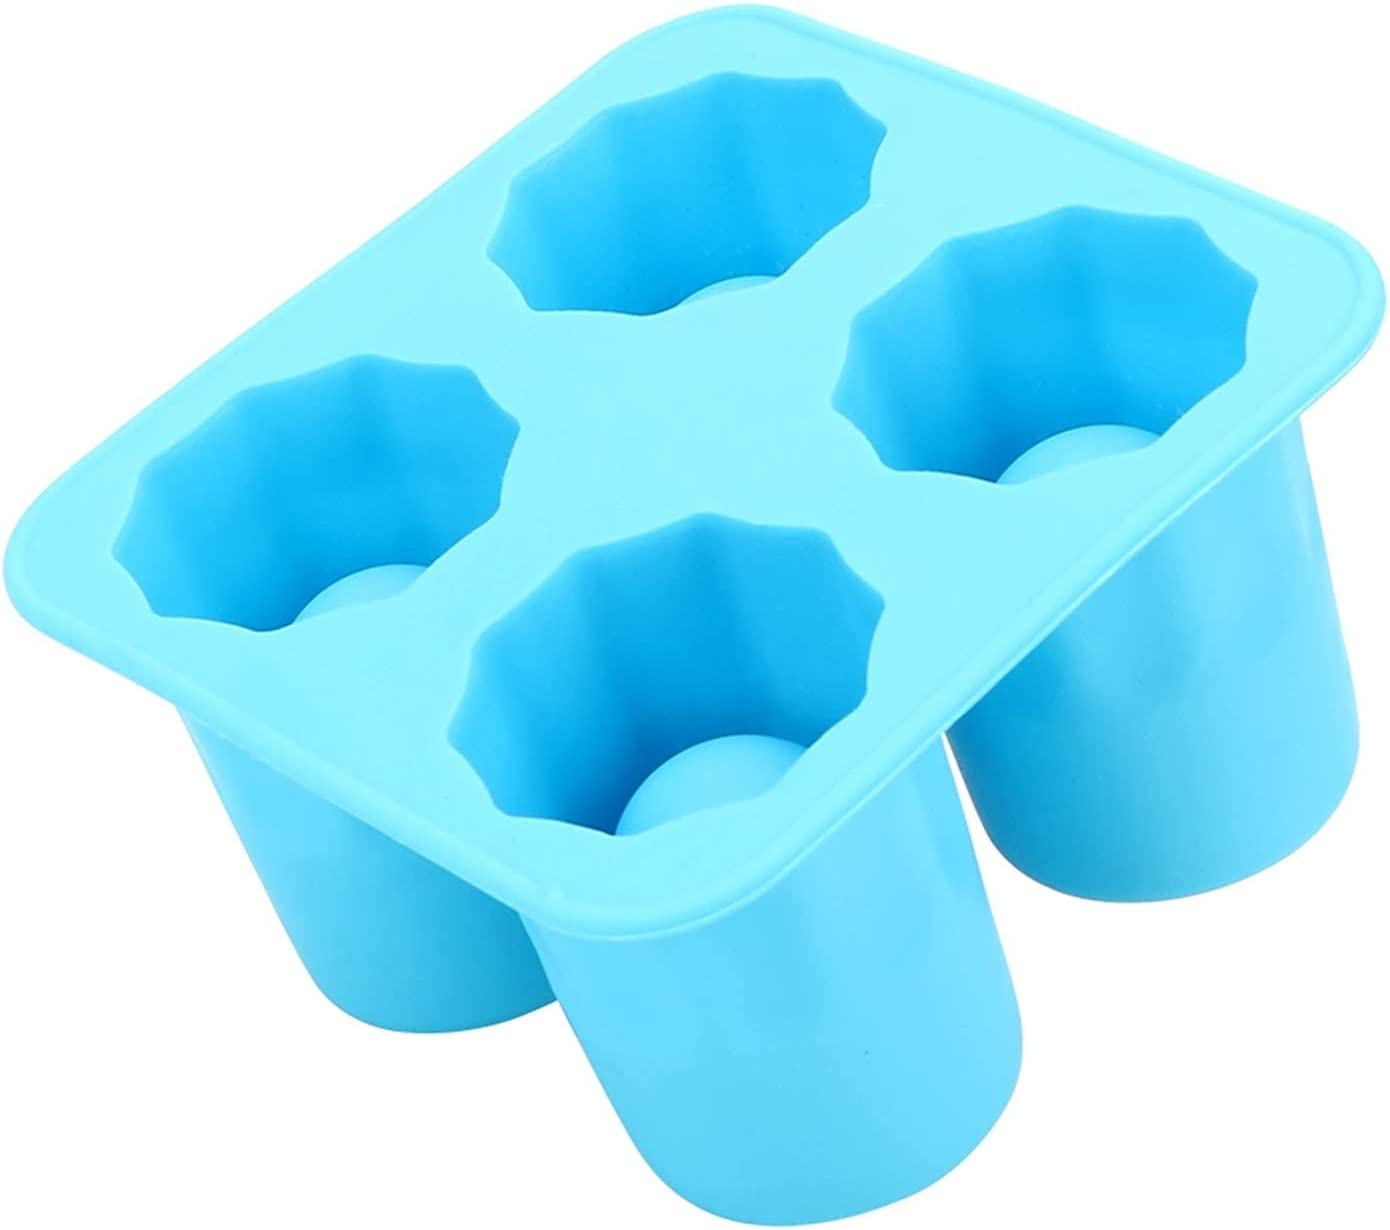 Ice Cube Tray Mold Makes Shot Sale Special Price Novelty Mould Max 51% OFF Gifts Ic Glasses